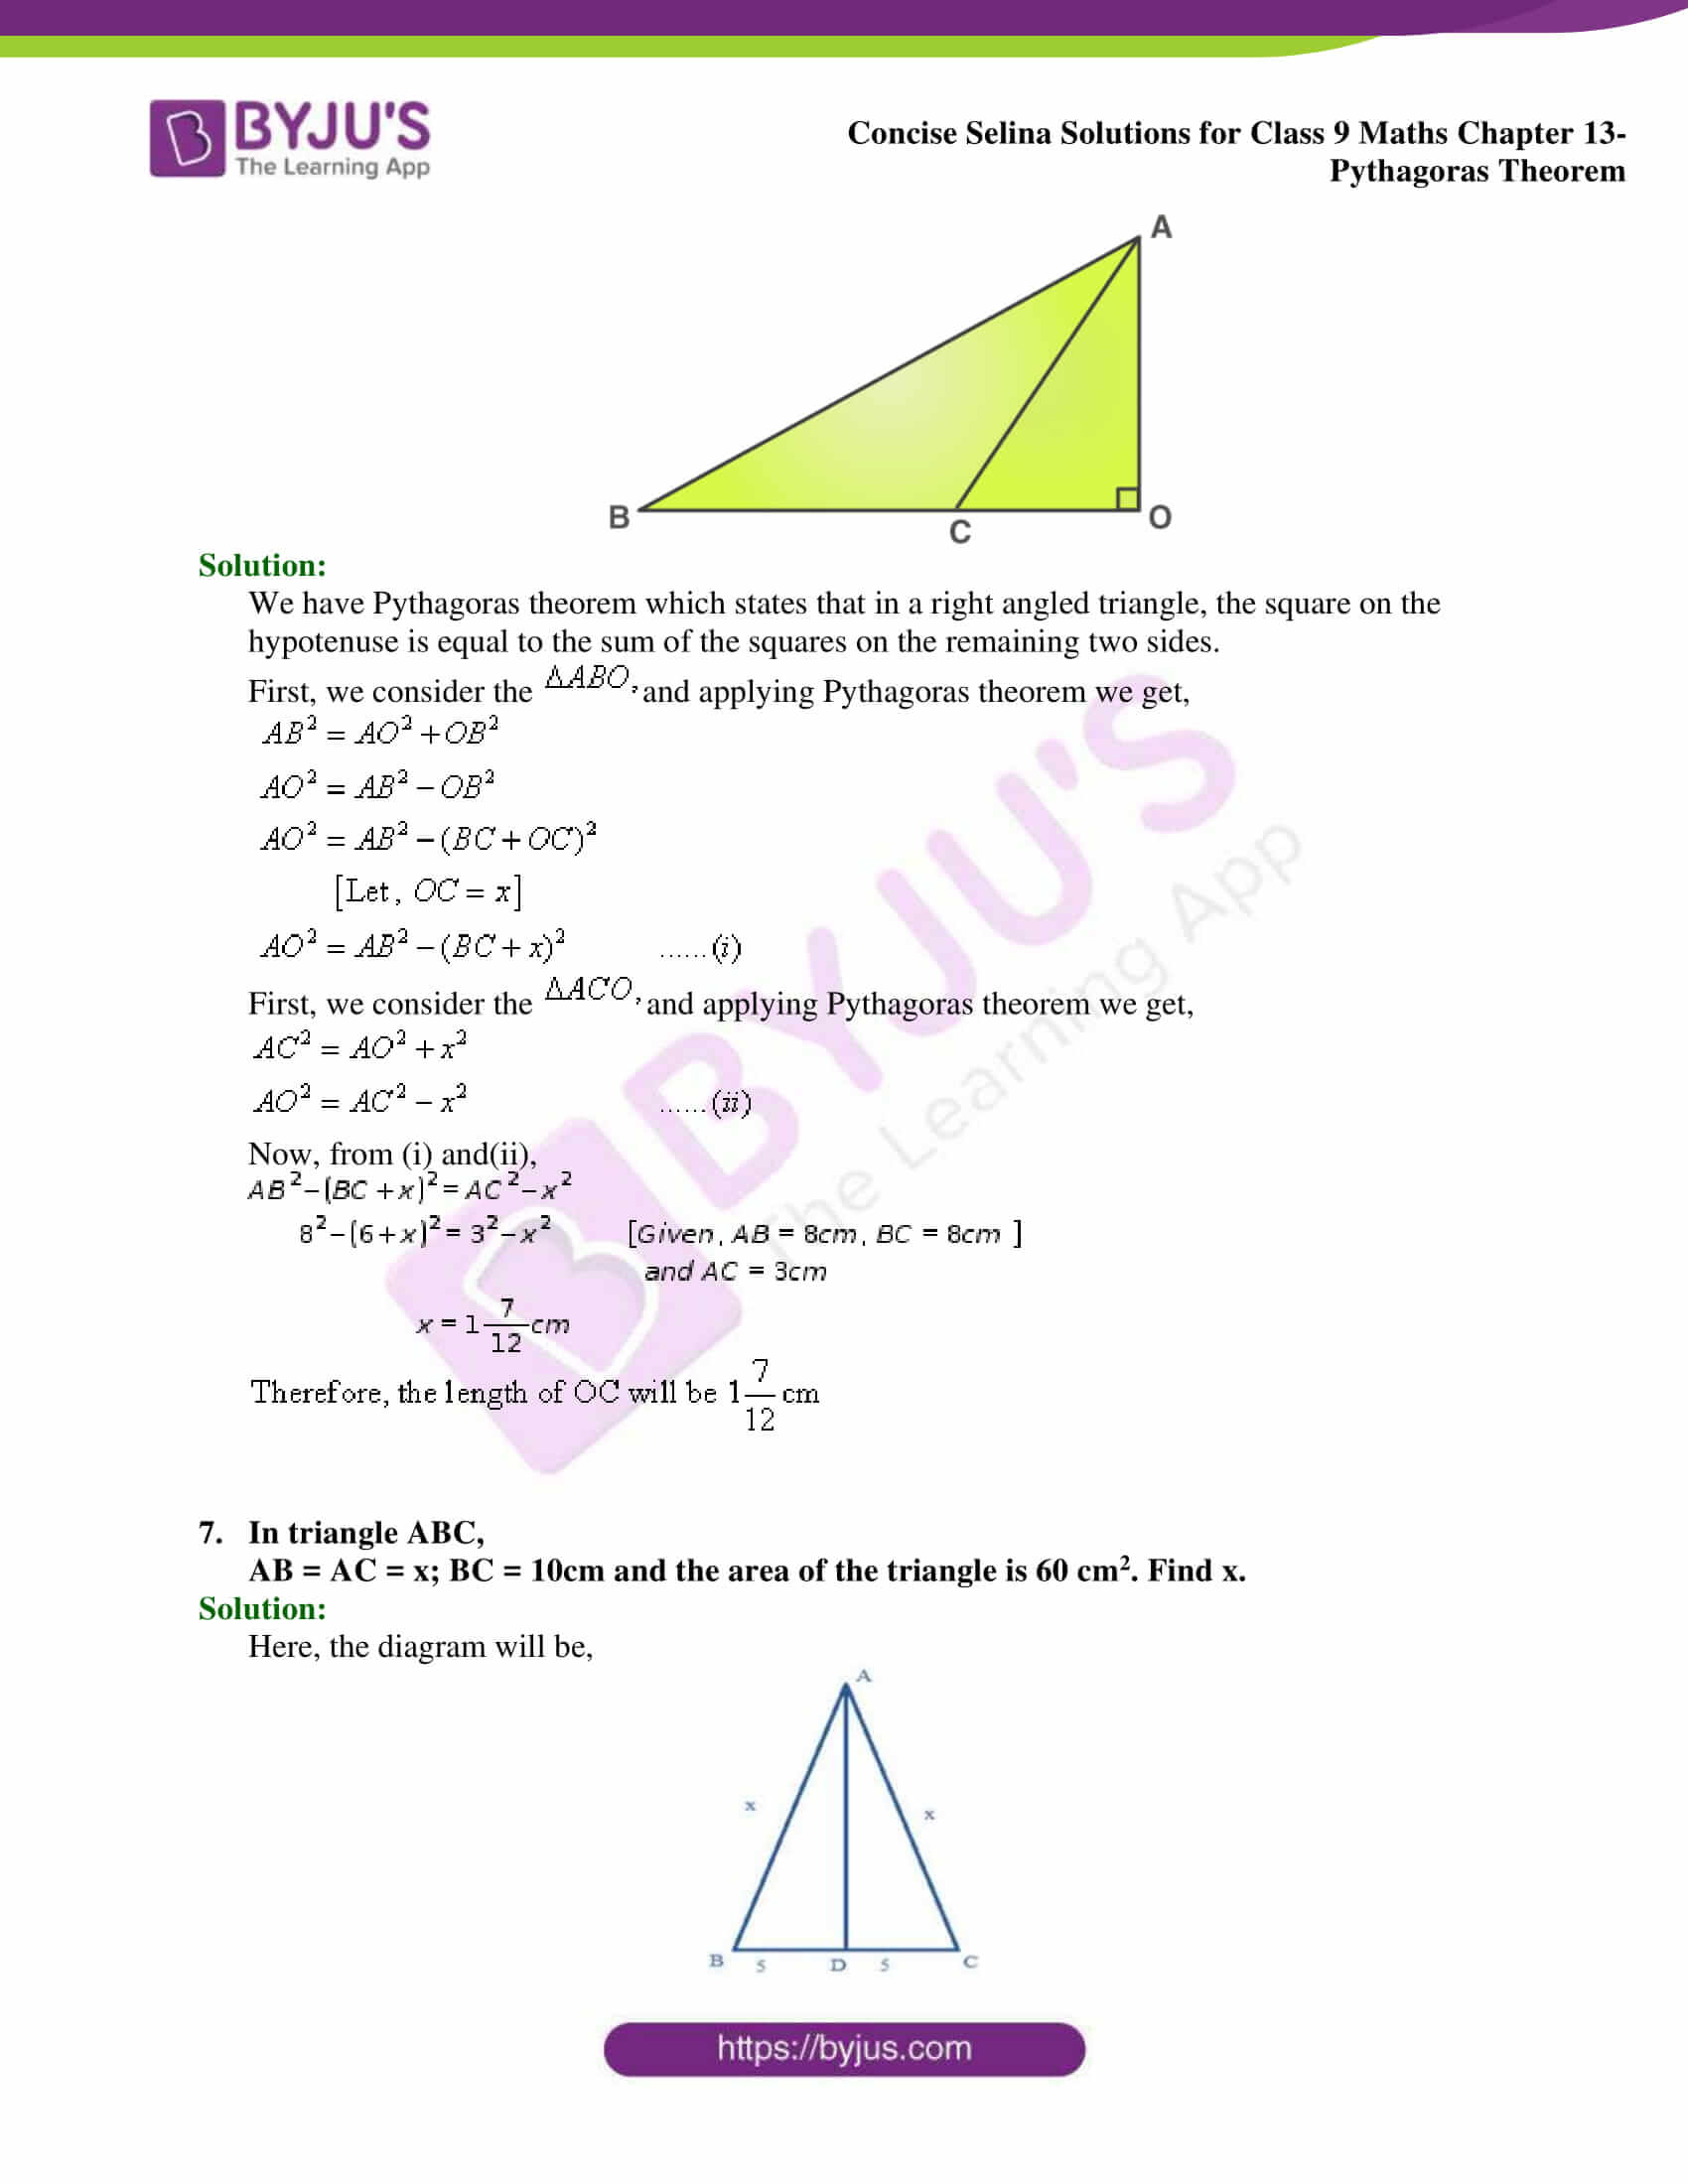 selina Solutions for Class 9 Maths Chapter 13 part 04